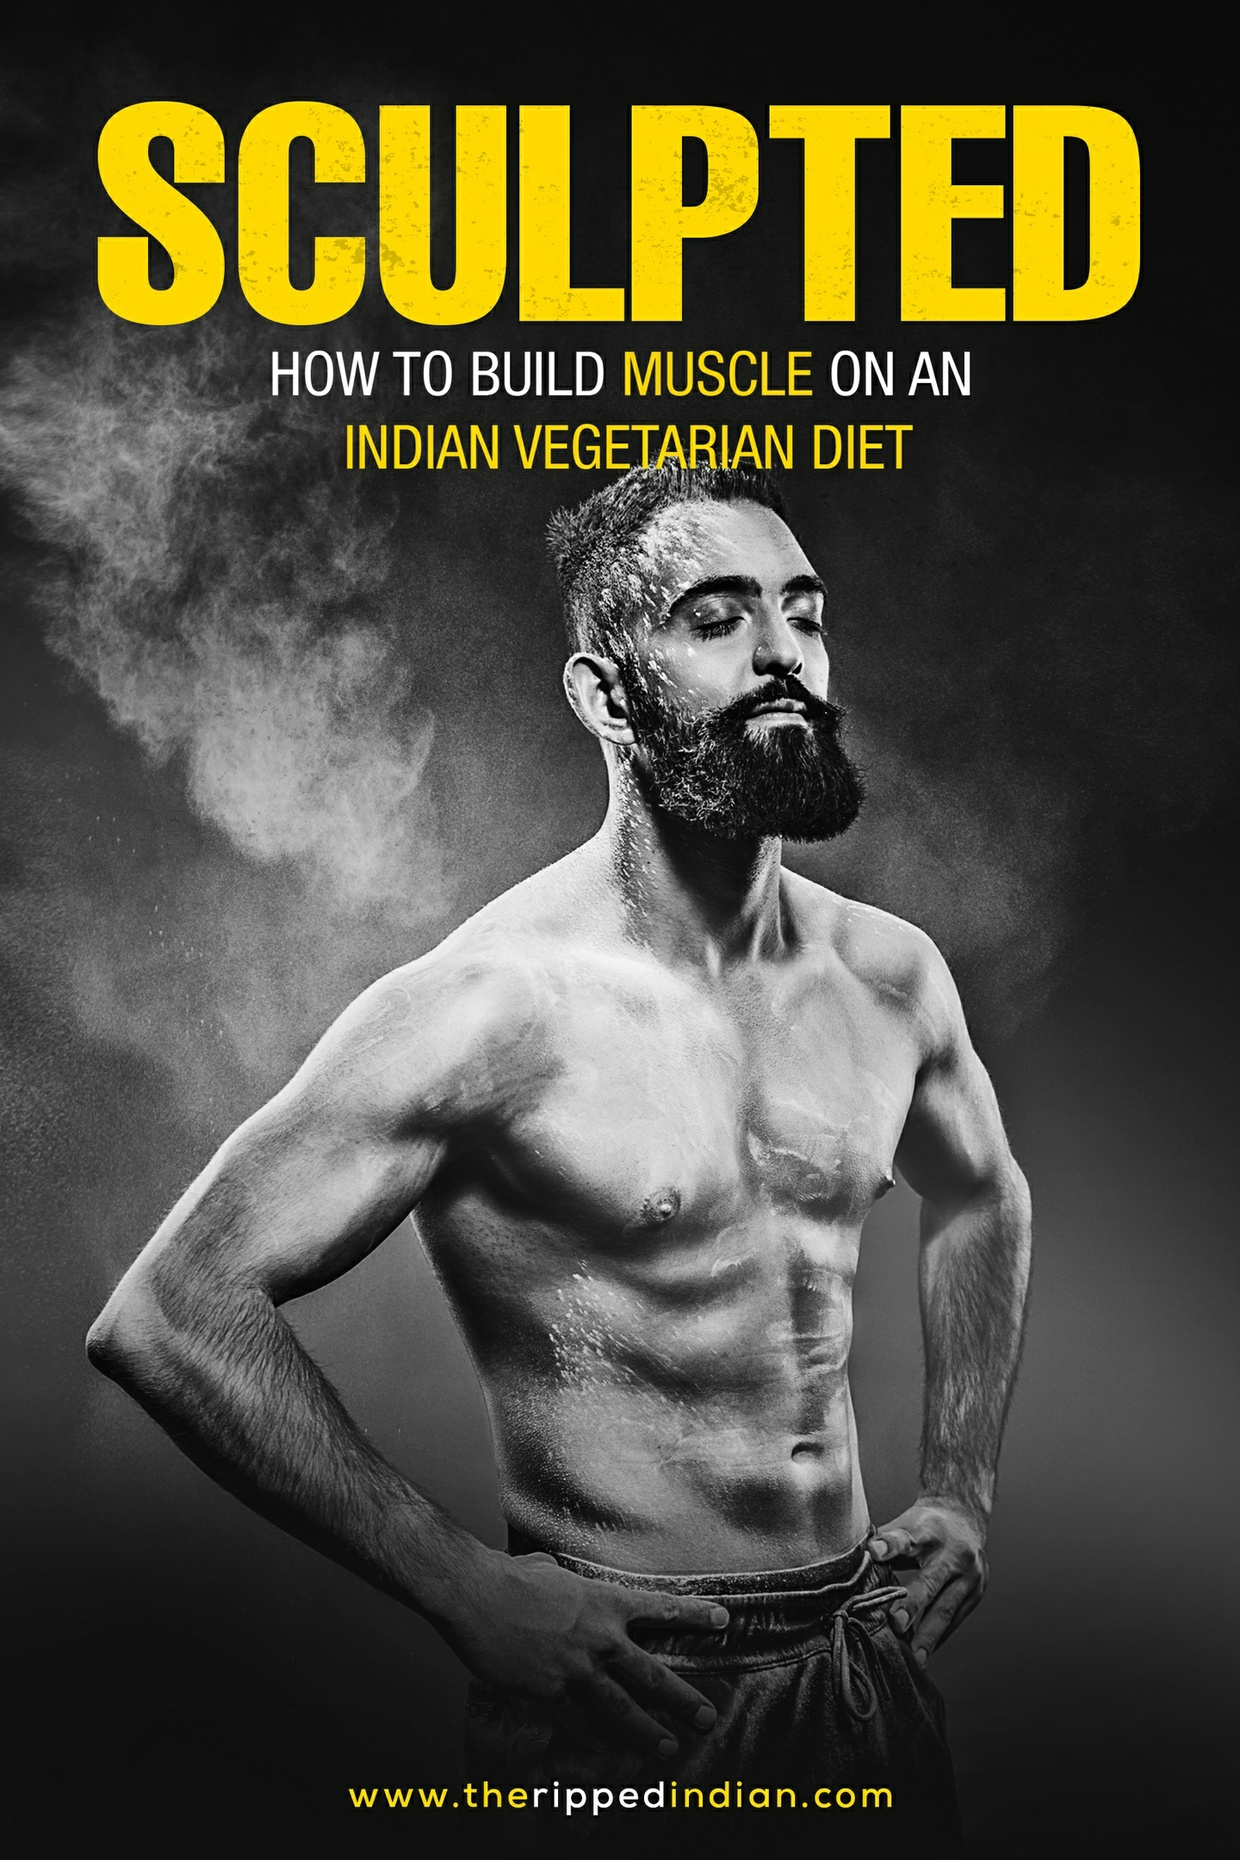 How to build muscle on an Indian vegetarian diet